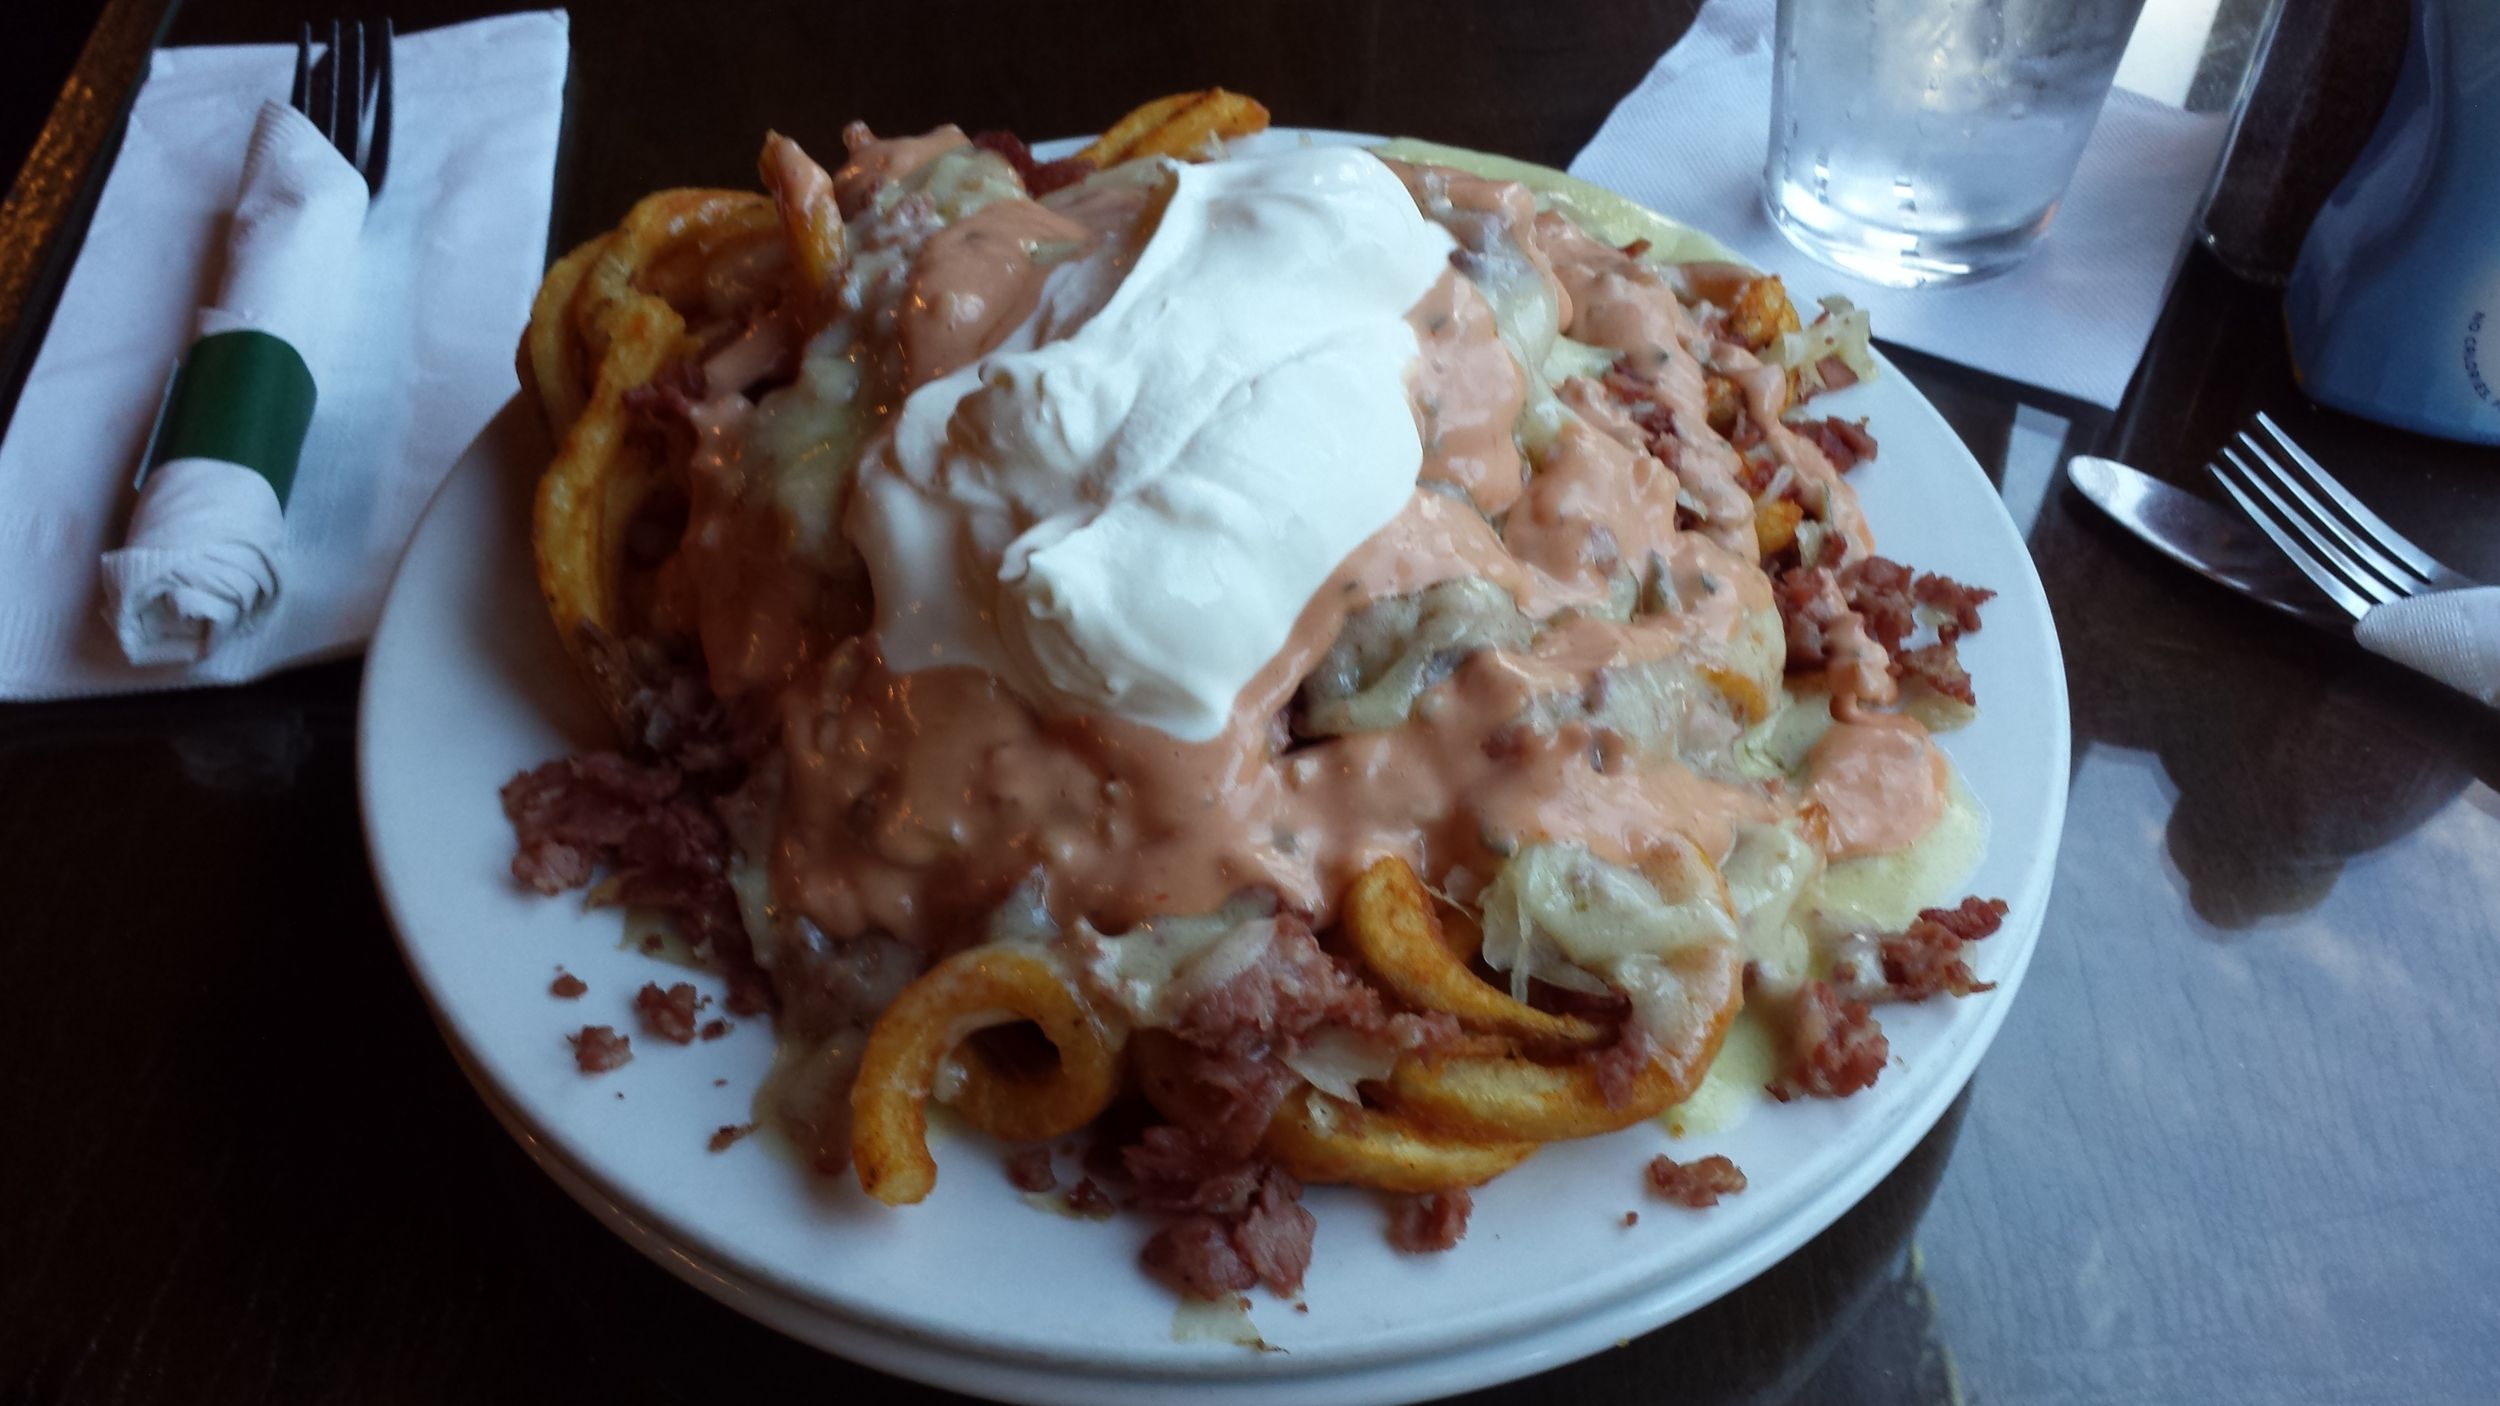 Seasoned Curly Fries, Corned Beef, Swiss Cheese, Sour Cream, Thousand Island Dressing, Sauerkraut